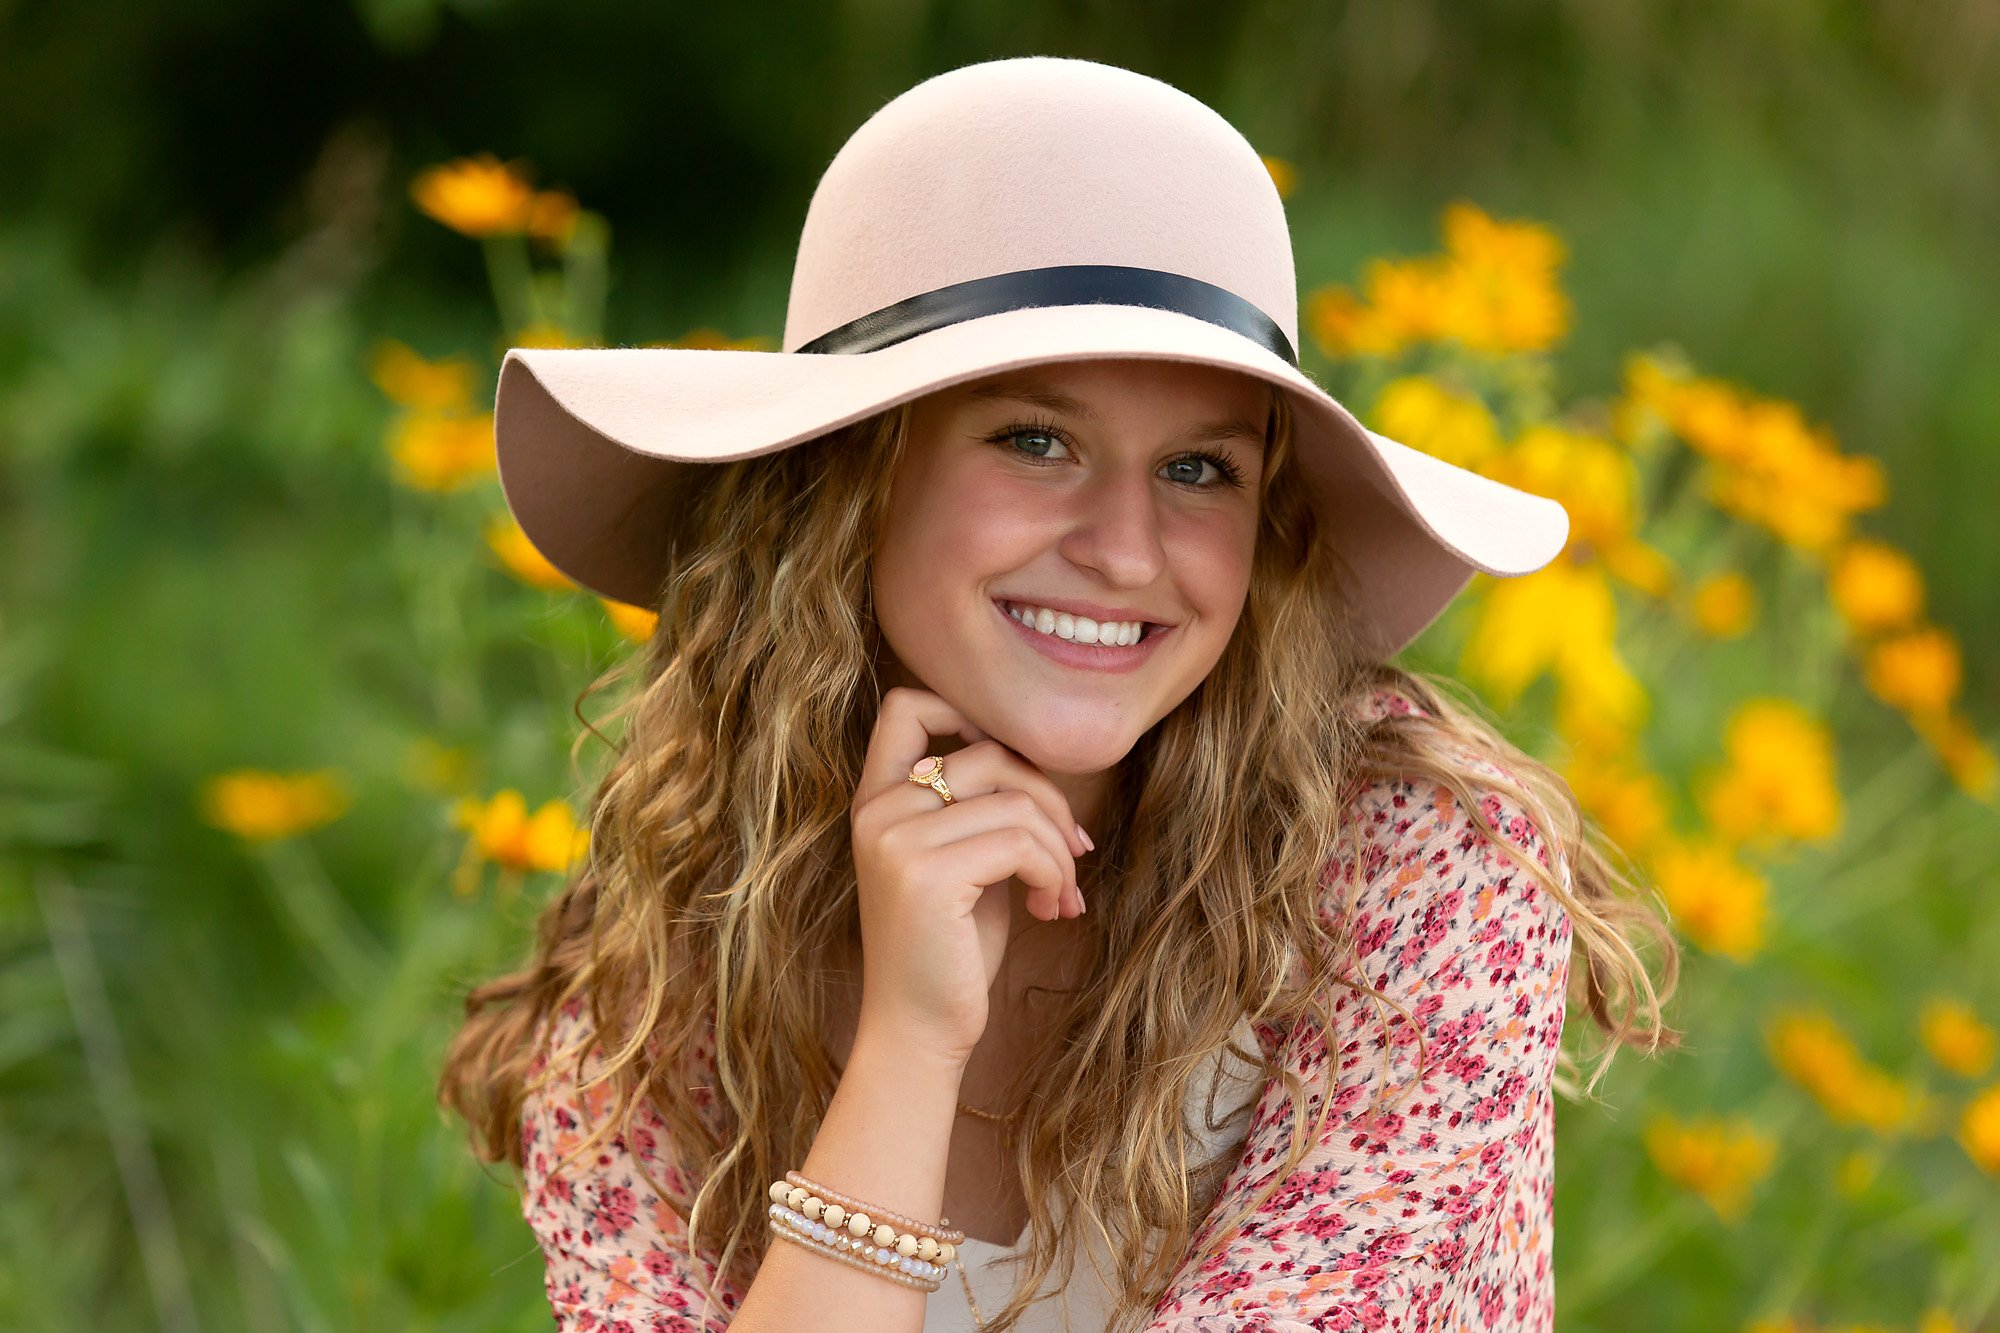 A high school senior girl poses with a hat in yellow flowers during a portrait session with Julie Collins Photography